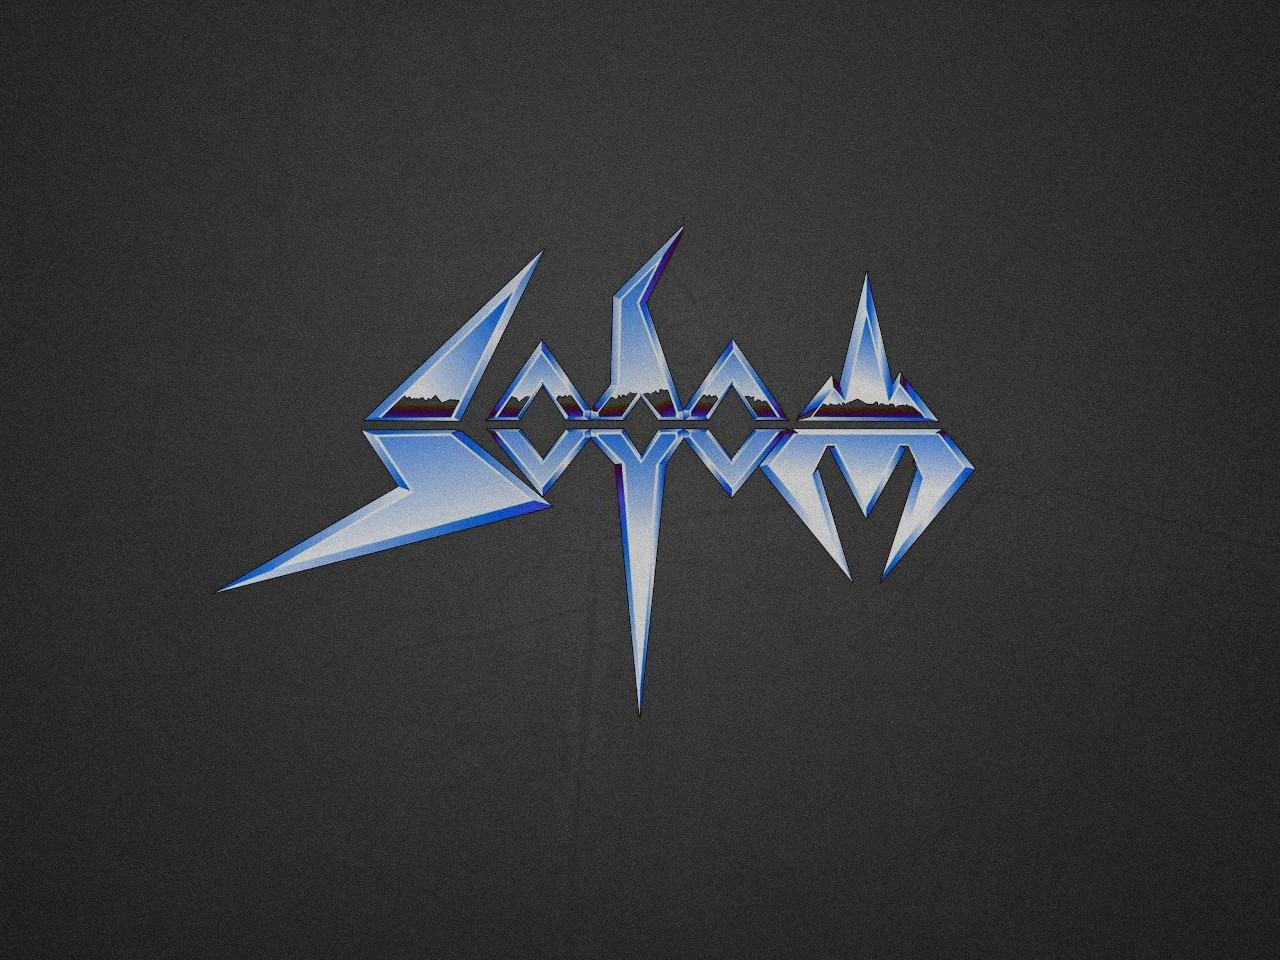 logos thrash metal HD Wallpaper